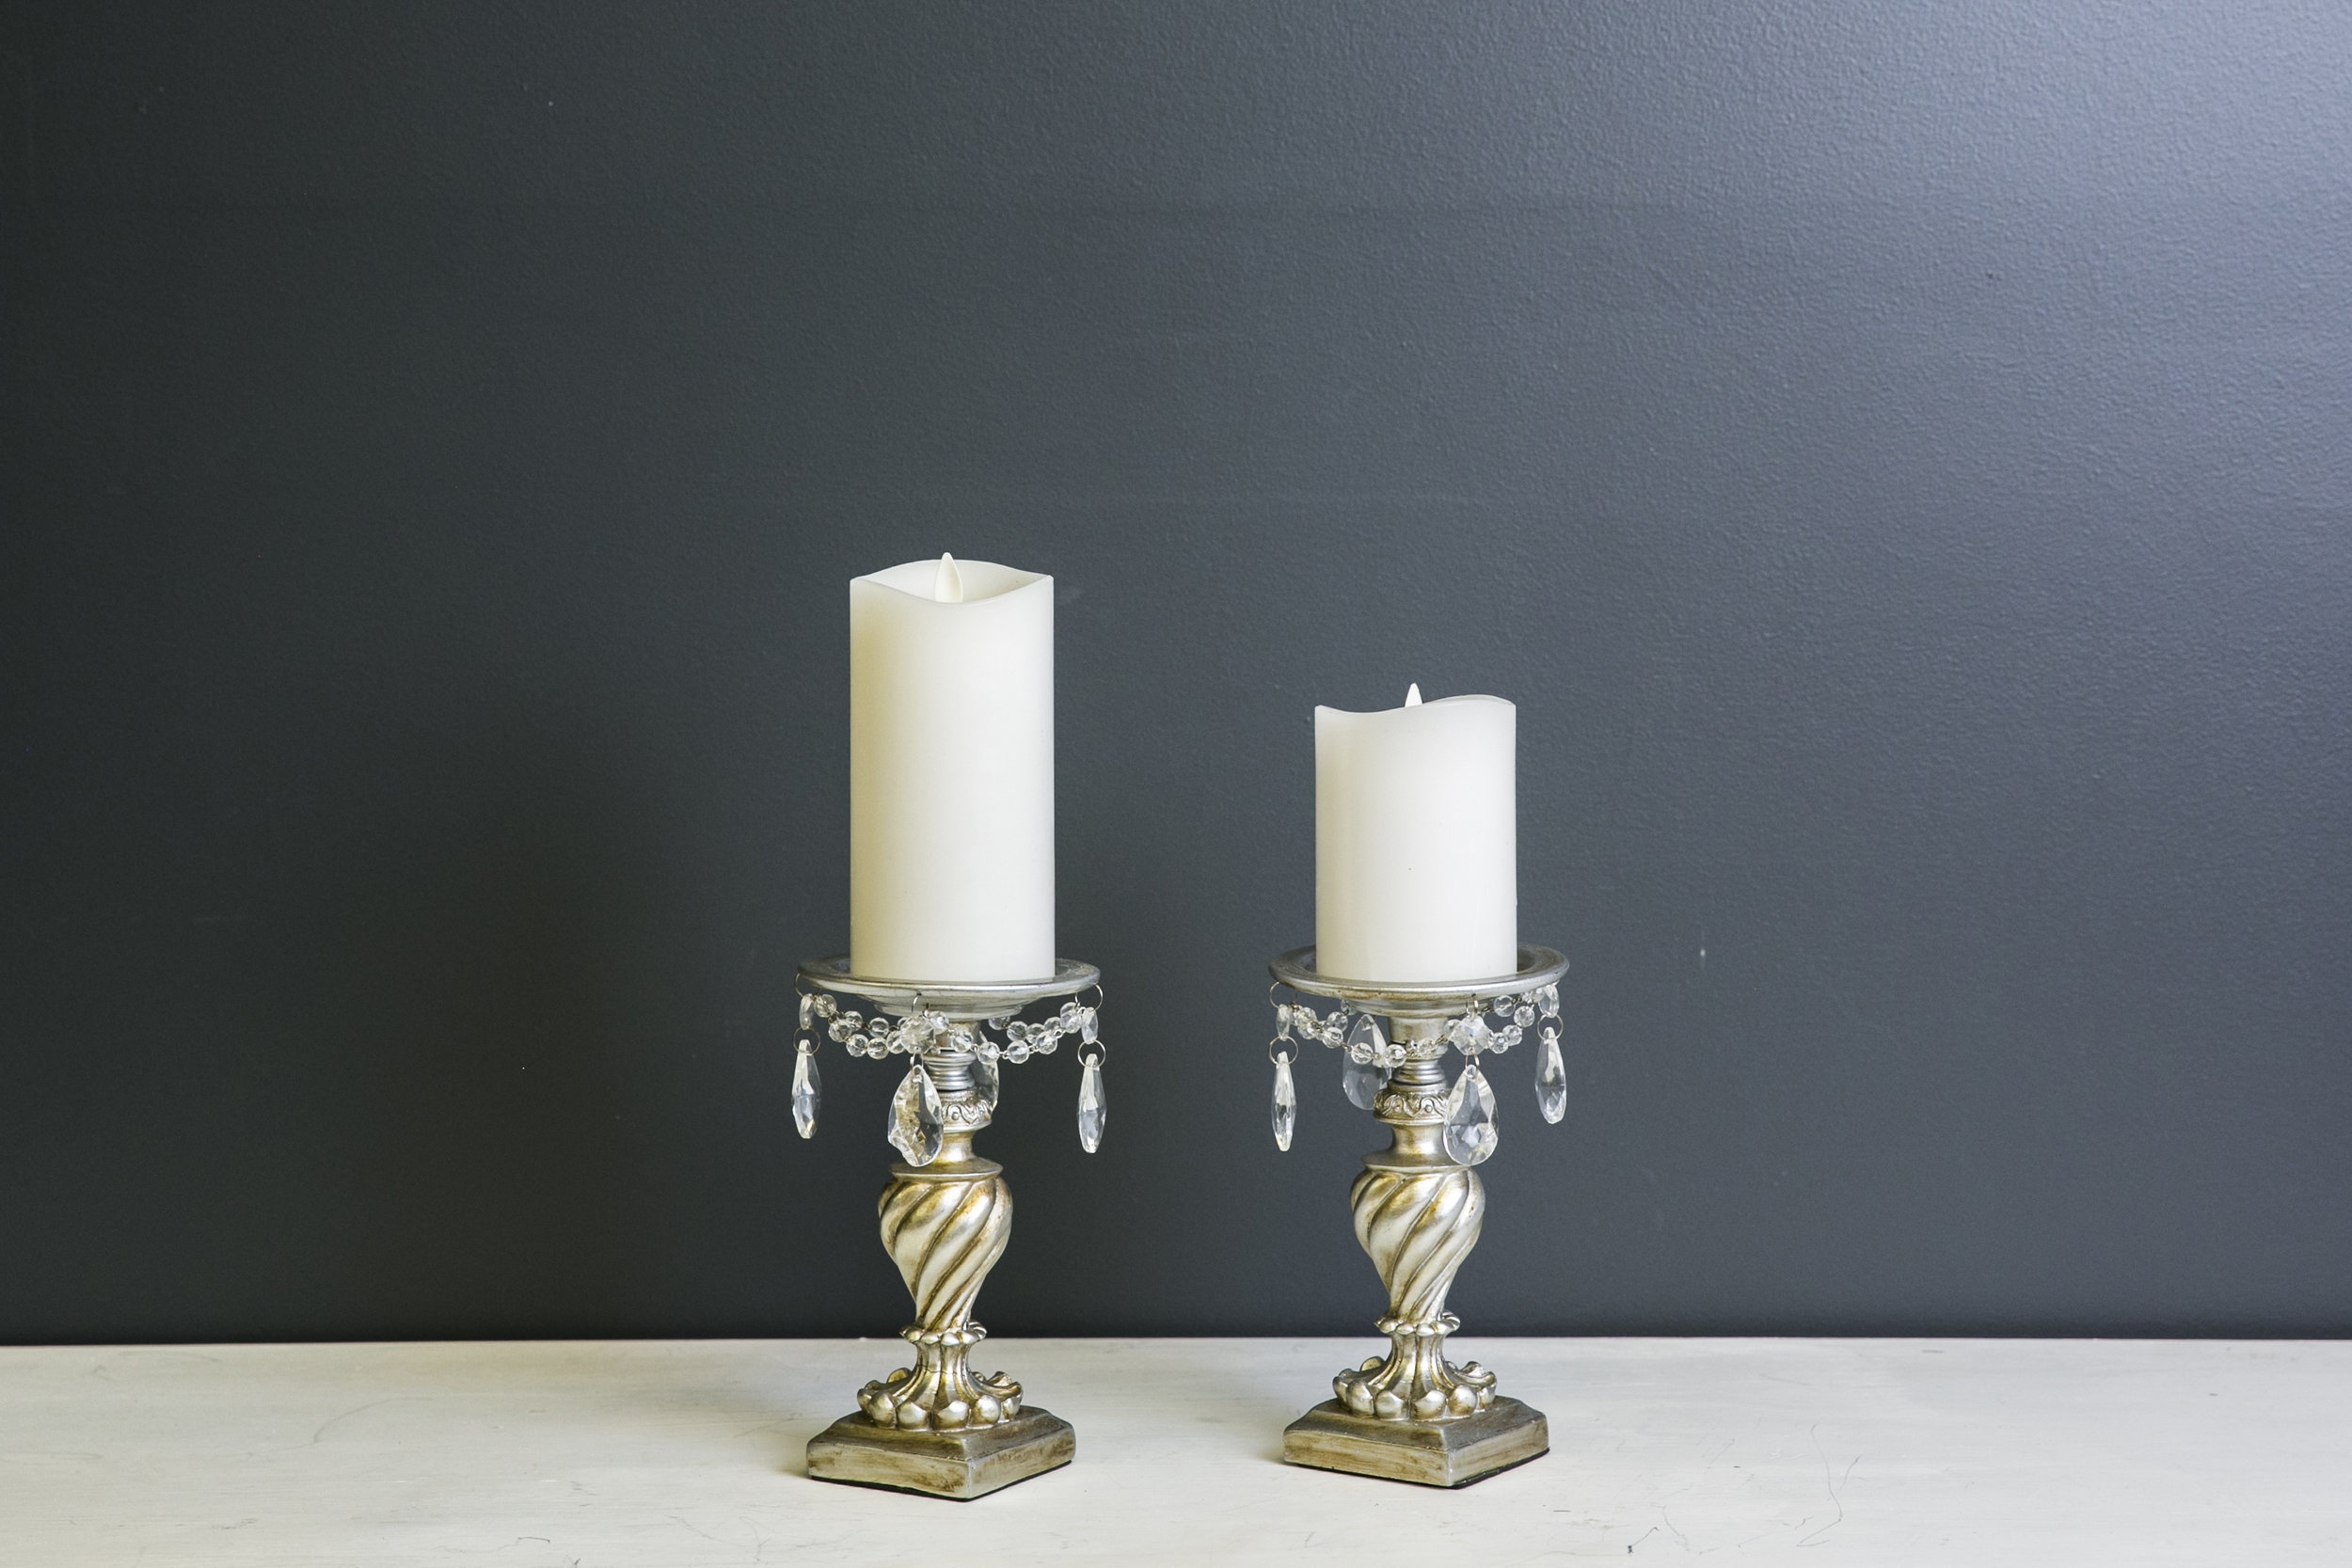 Barrister Pillar Candlesticks (candles not included)